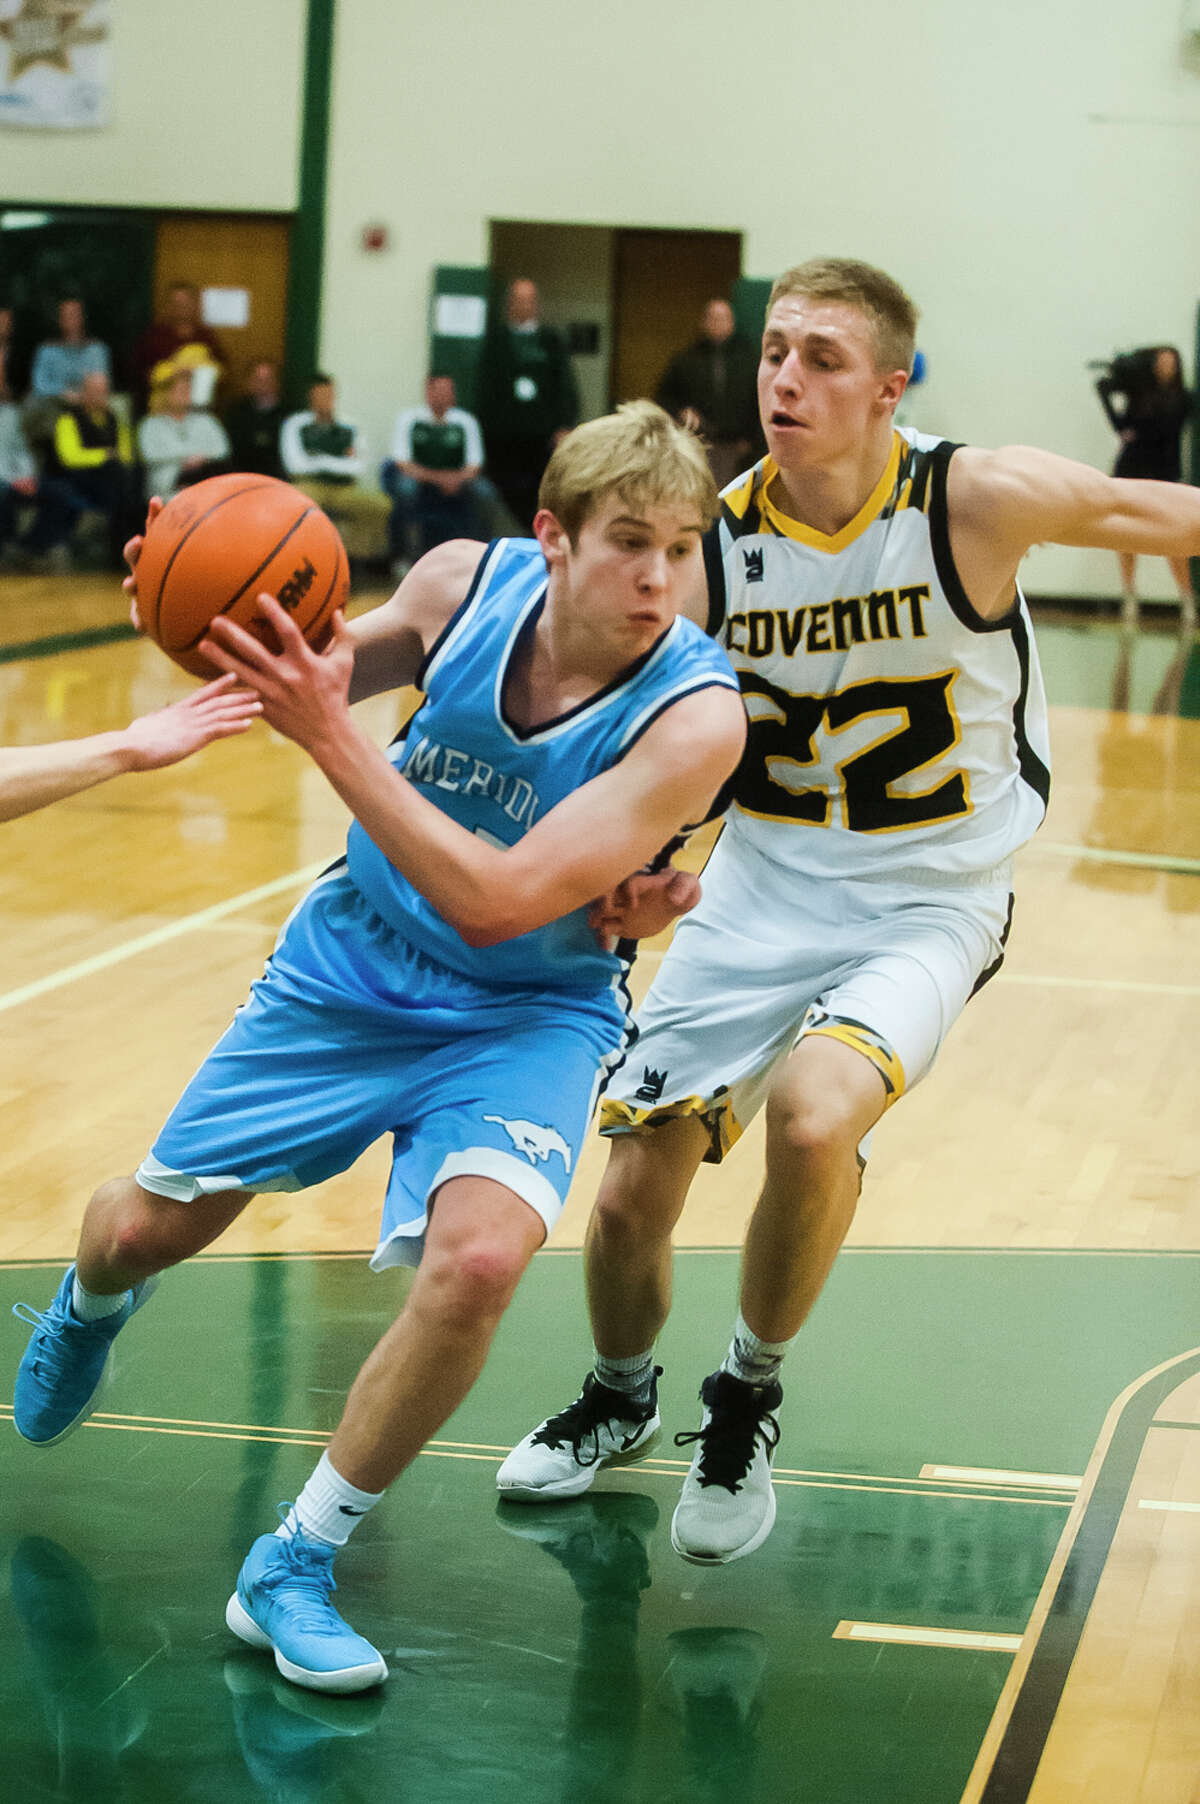 Meridian senior Garrett Stockford dribbles toward the basket during the Mustangs' 53-30 loss to Grand Rapids Covenant Christian in the Class C state semifinals on Tuesday, March 20, 2018 at Central Montcalm High School in Stanton. (Katy Kildee/kkildee@mdn.net)